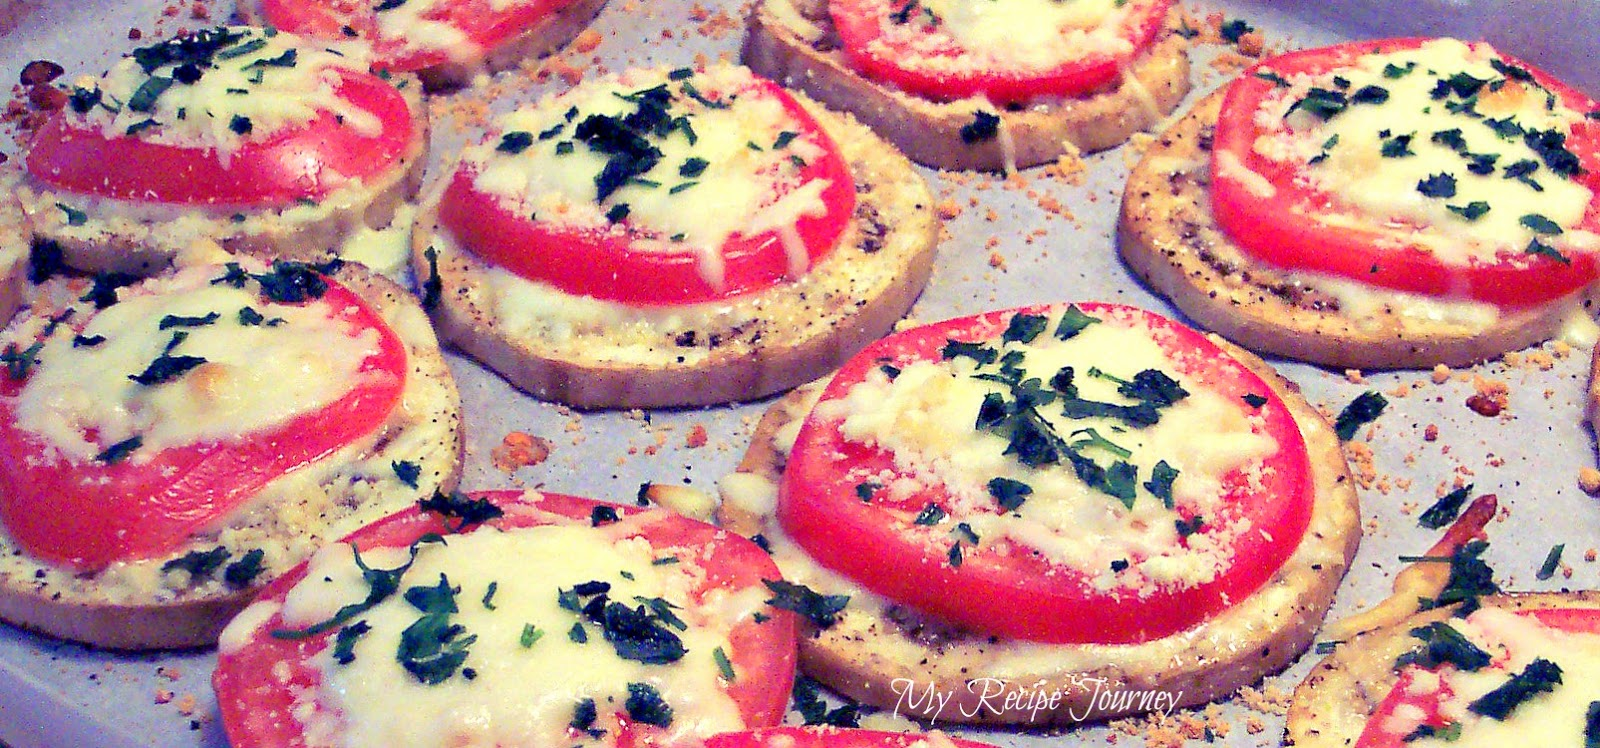 Baked Eggplant and Tomato Stacks